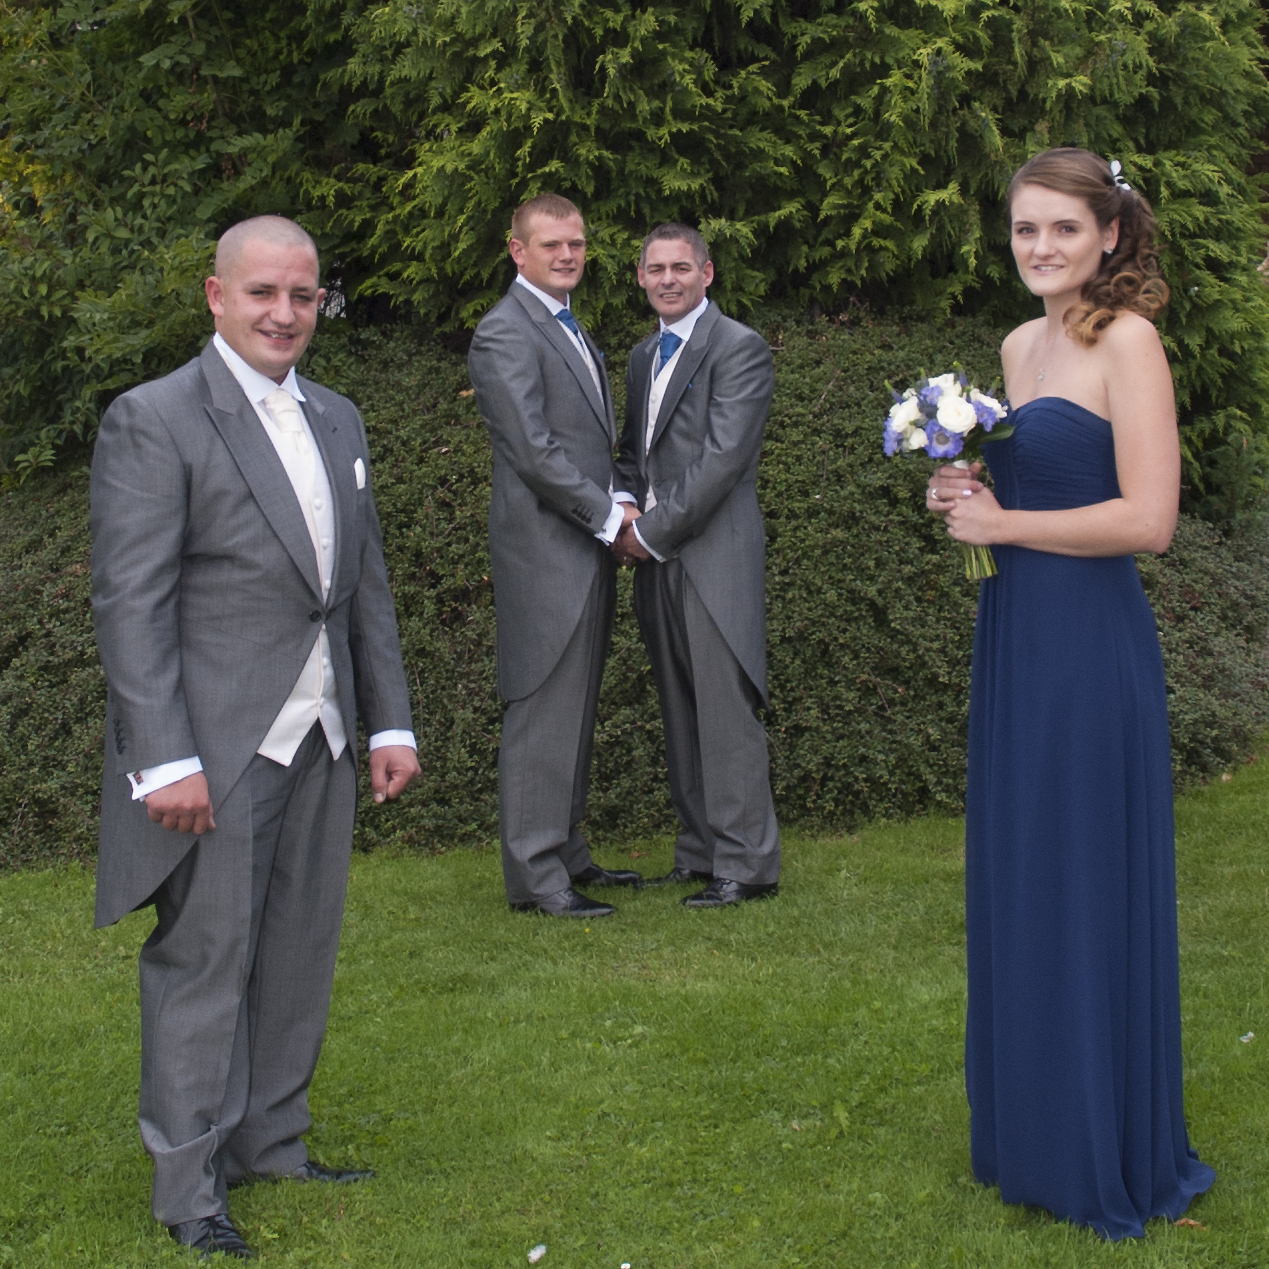 Grroms, bestman and Bridesmaid